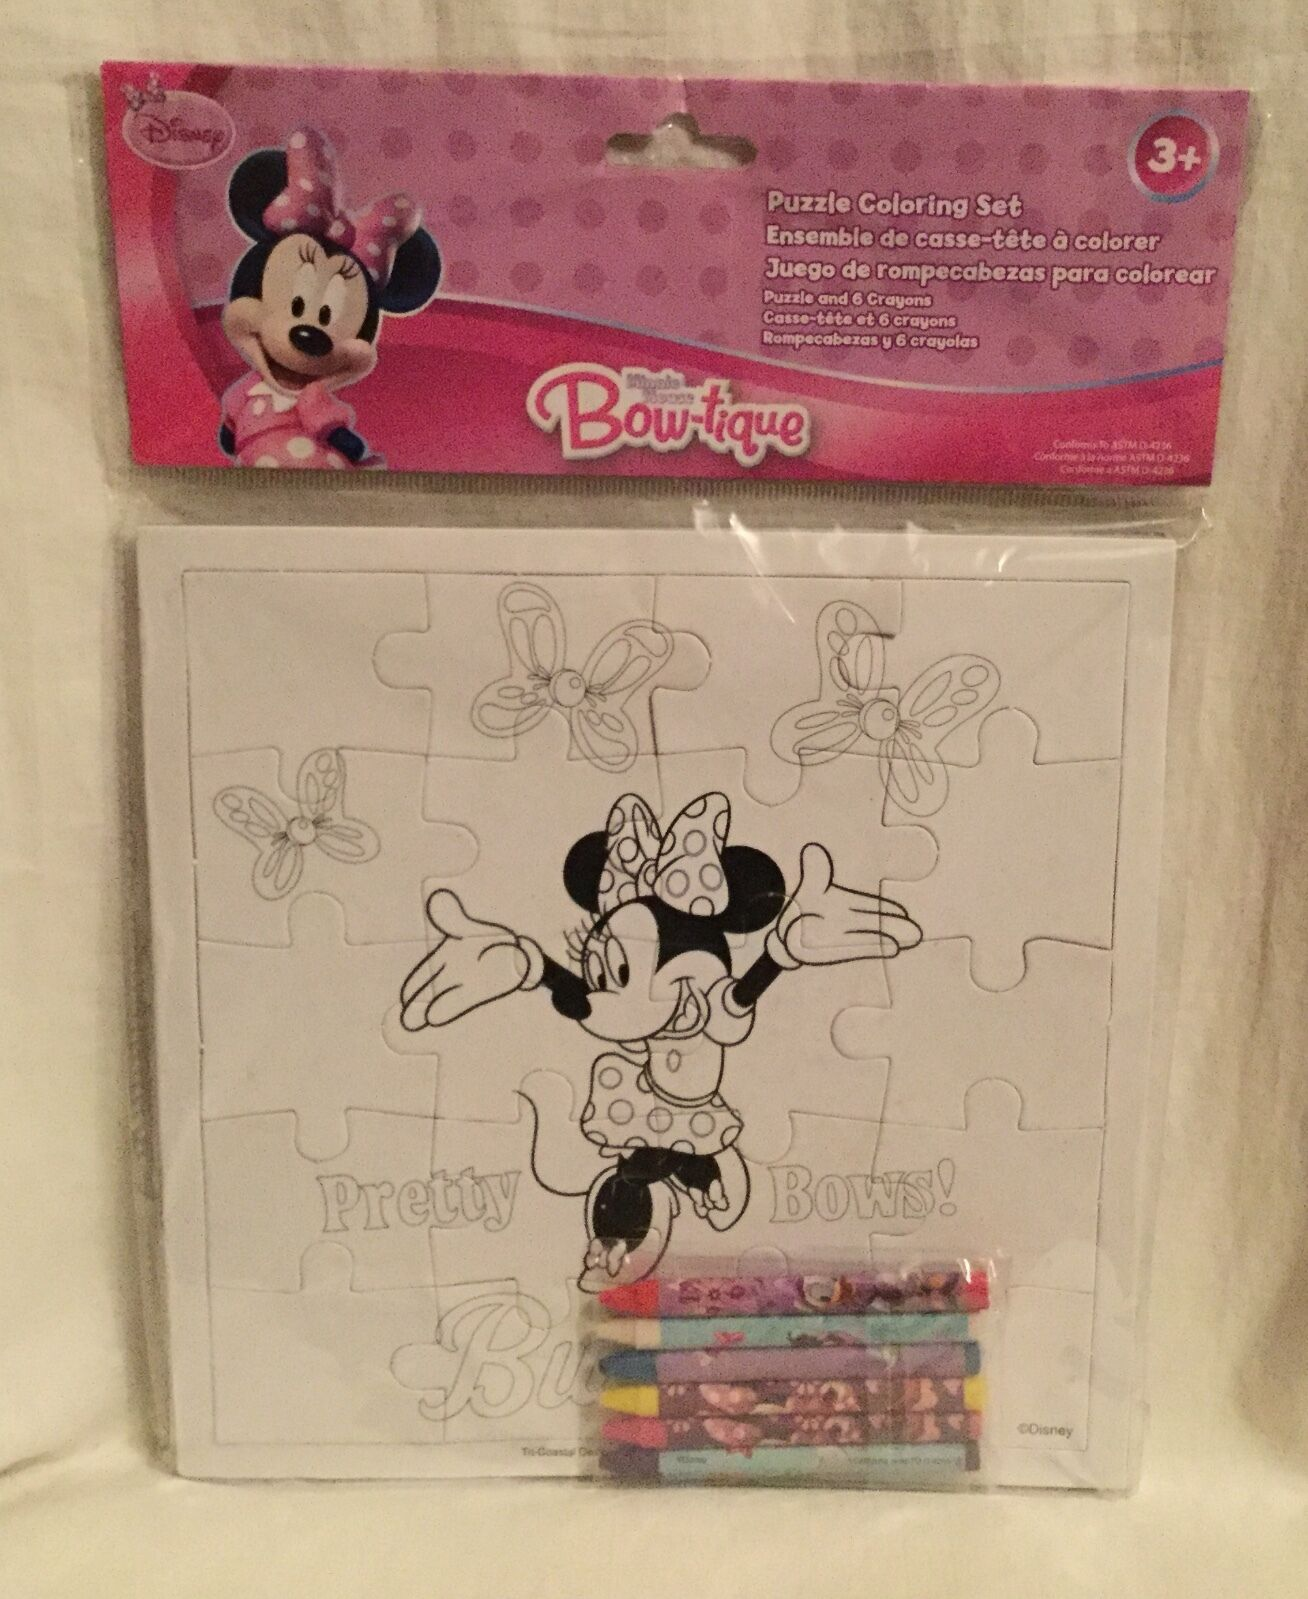 Disney Junior Puzzle & 6 Crayons Coloring Set - Minnie Mouse Bow ...